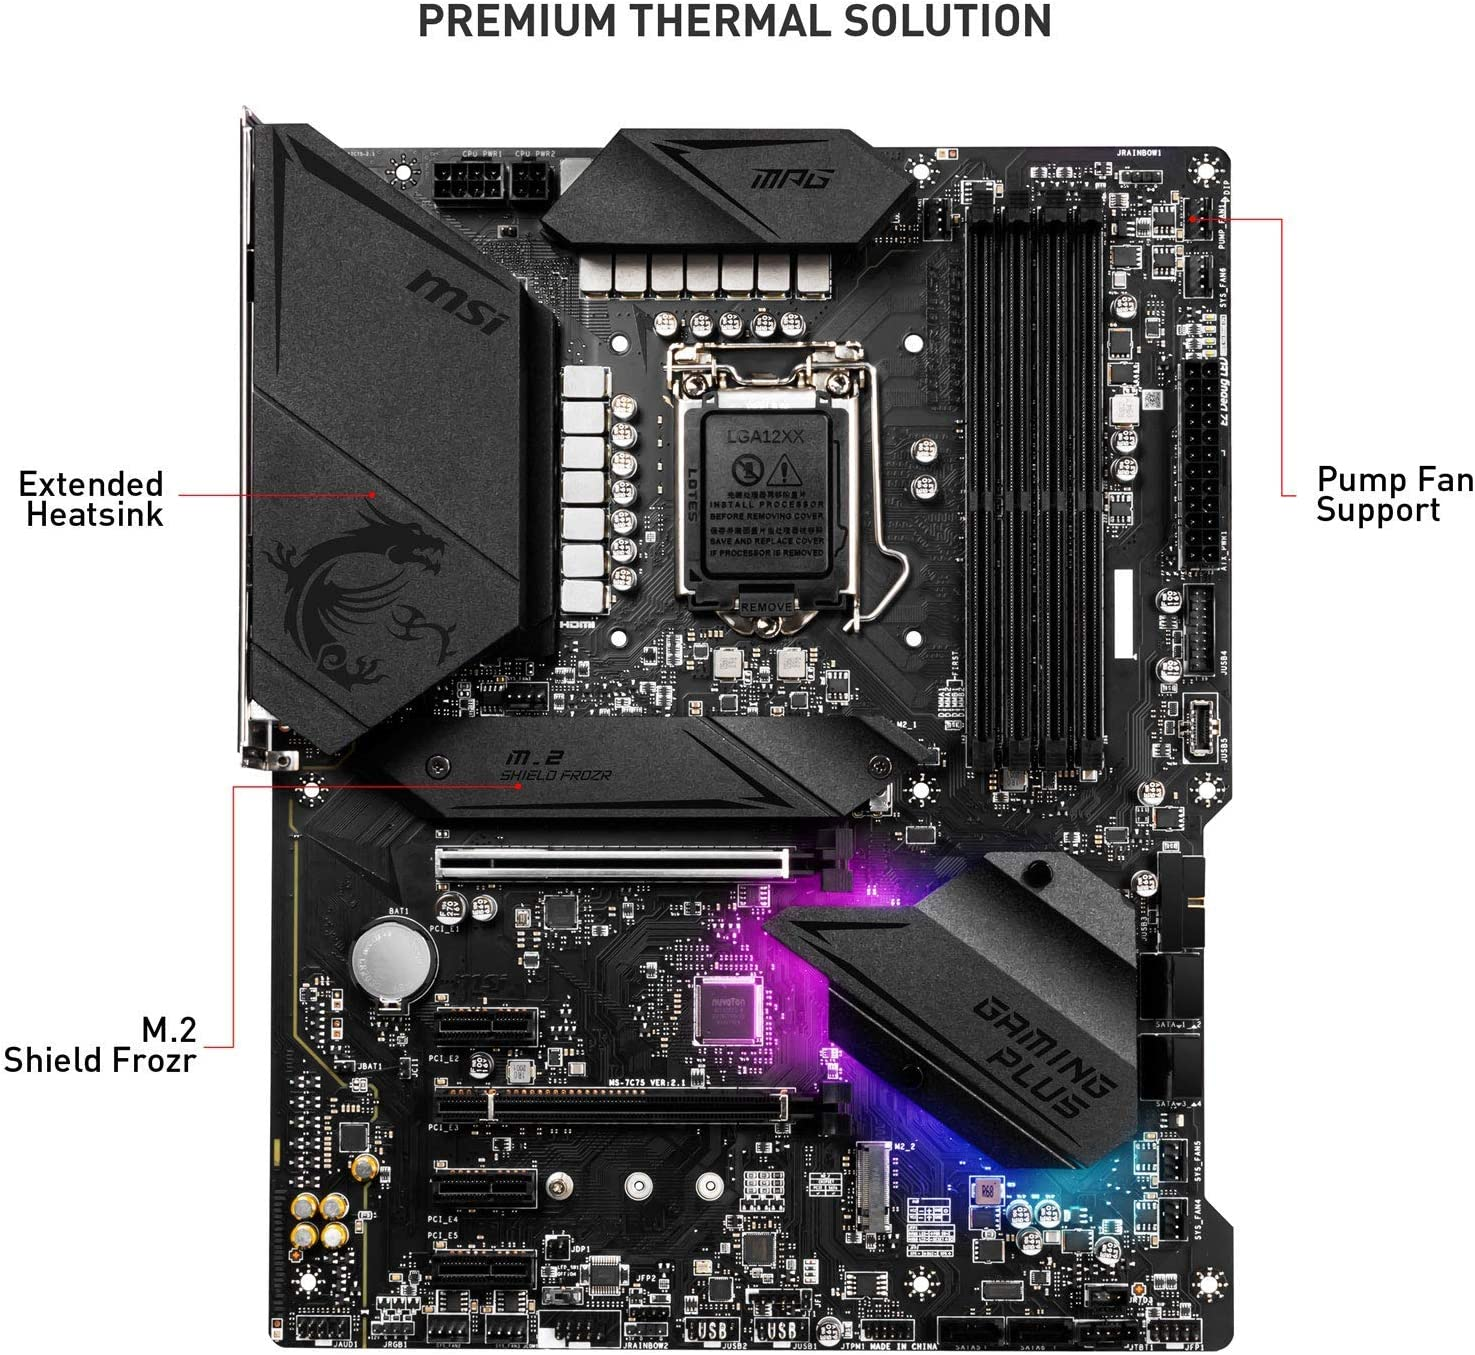 MSI MPG Z490 GAMING PLUS Motherboard ATX, LGA1200, DDR4, LAN, USB 3.2 Gen2, Type C, M.2, DisplayPort, HDMI, Pre-installed I/O Shield, RGB Mystic Light, Gen 4 Ready, 10th Gen Intel Core